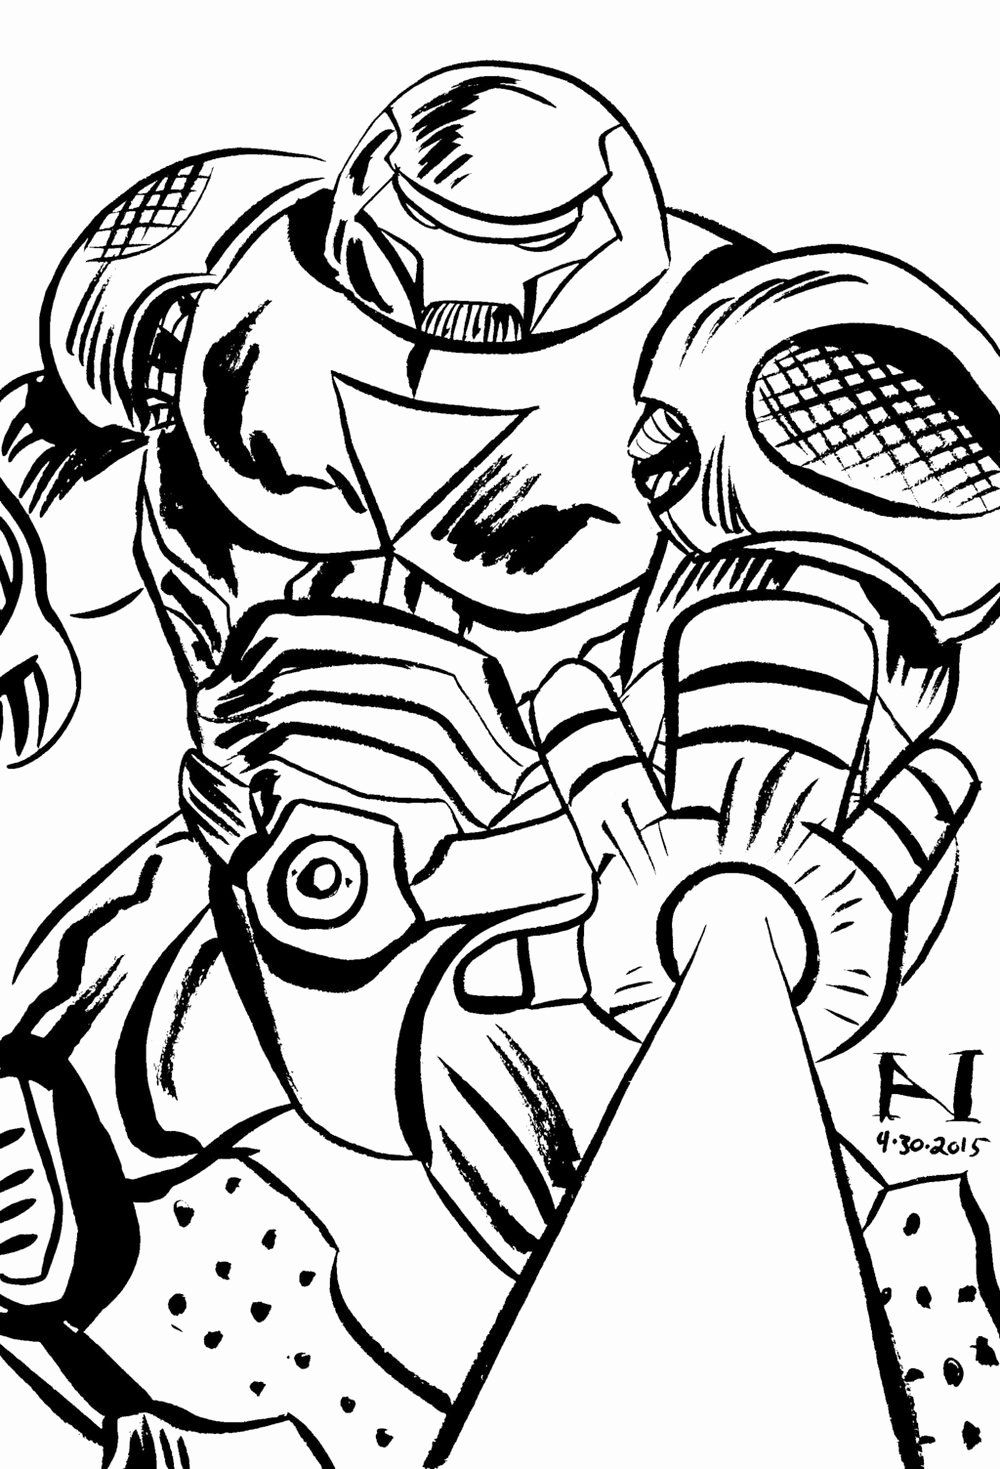 Hulk Buster Coloring Page Unique Hulkbuster Iron Man Coloring Sheet Avengers Coloring Pages Coloring Pages Avengers Coloring